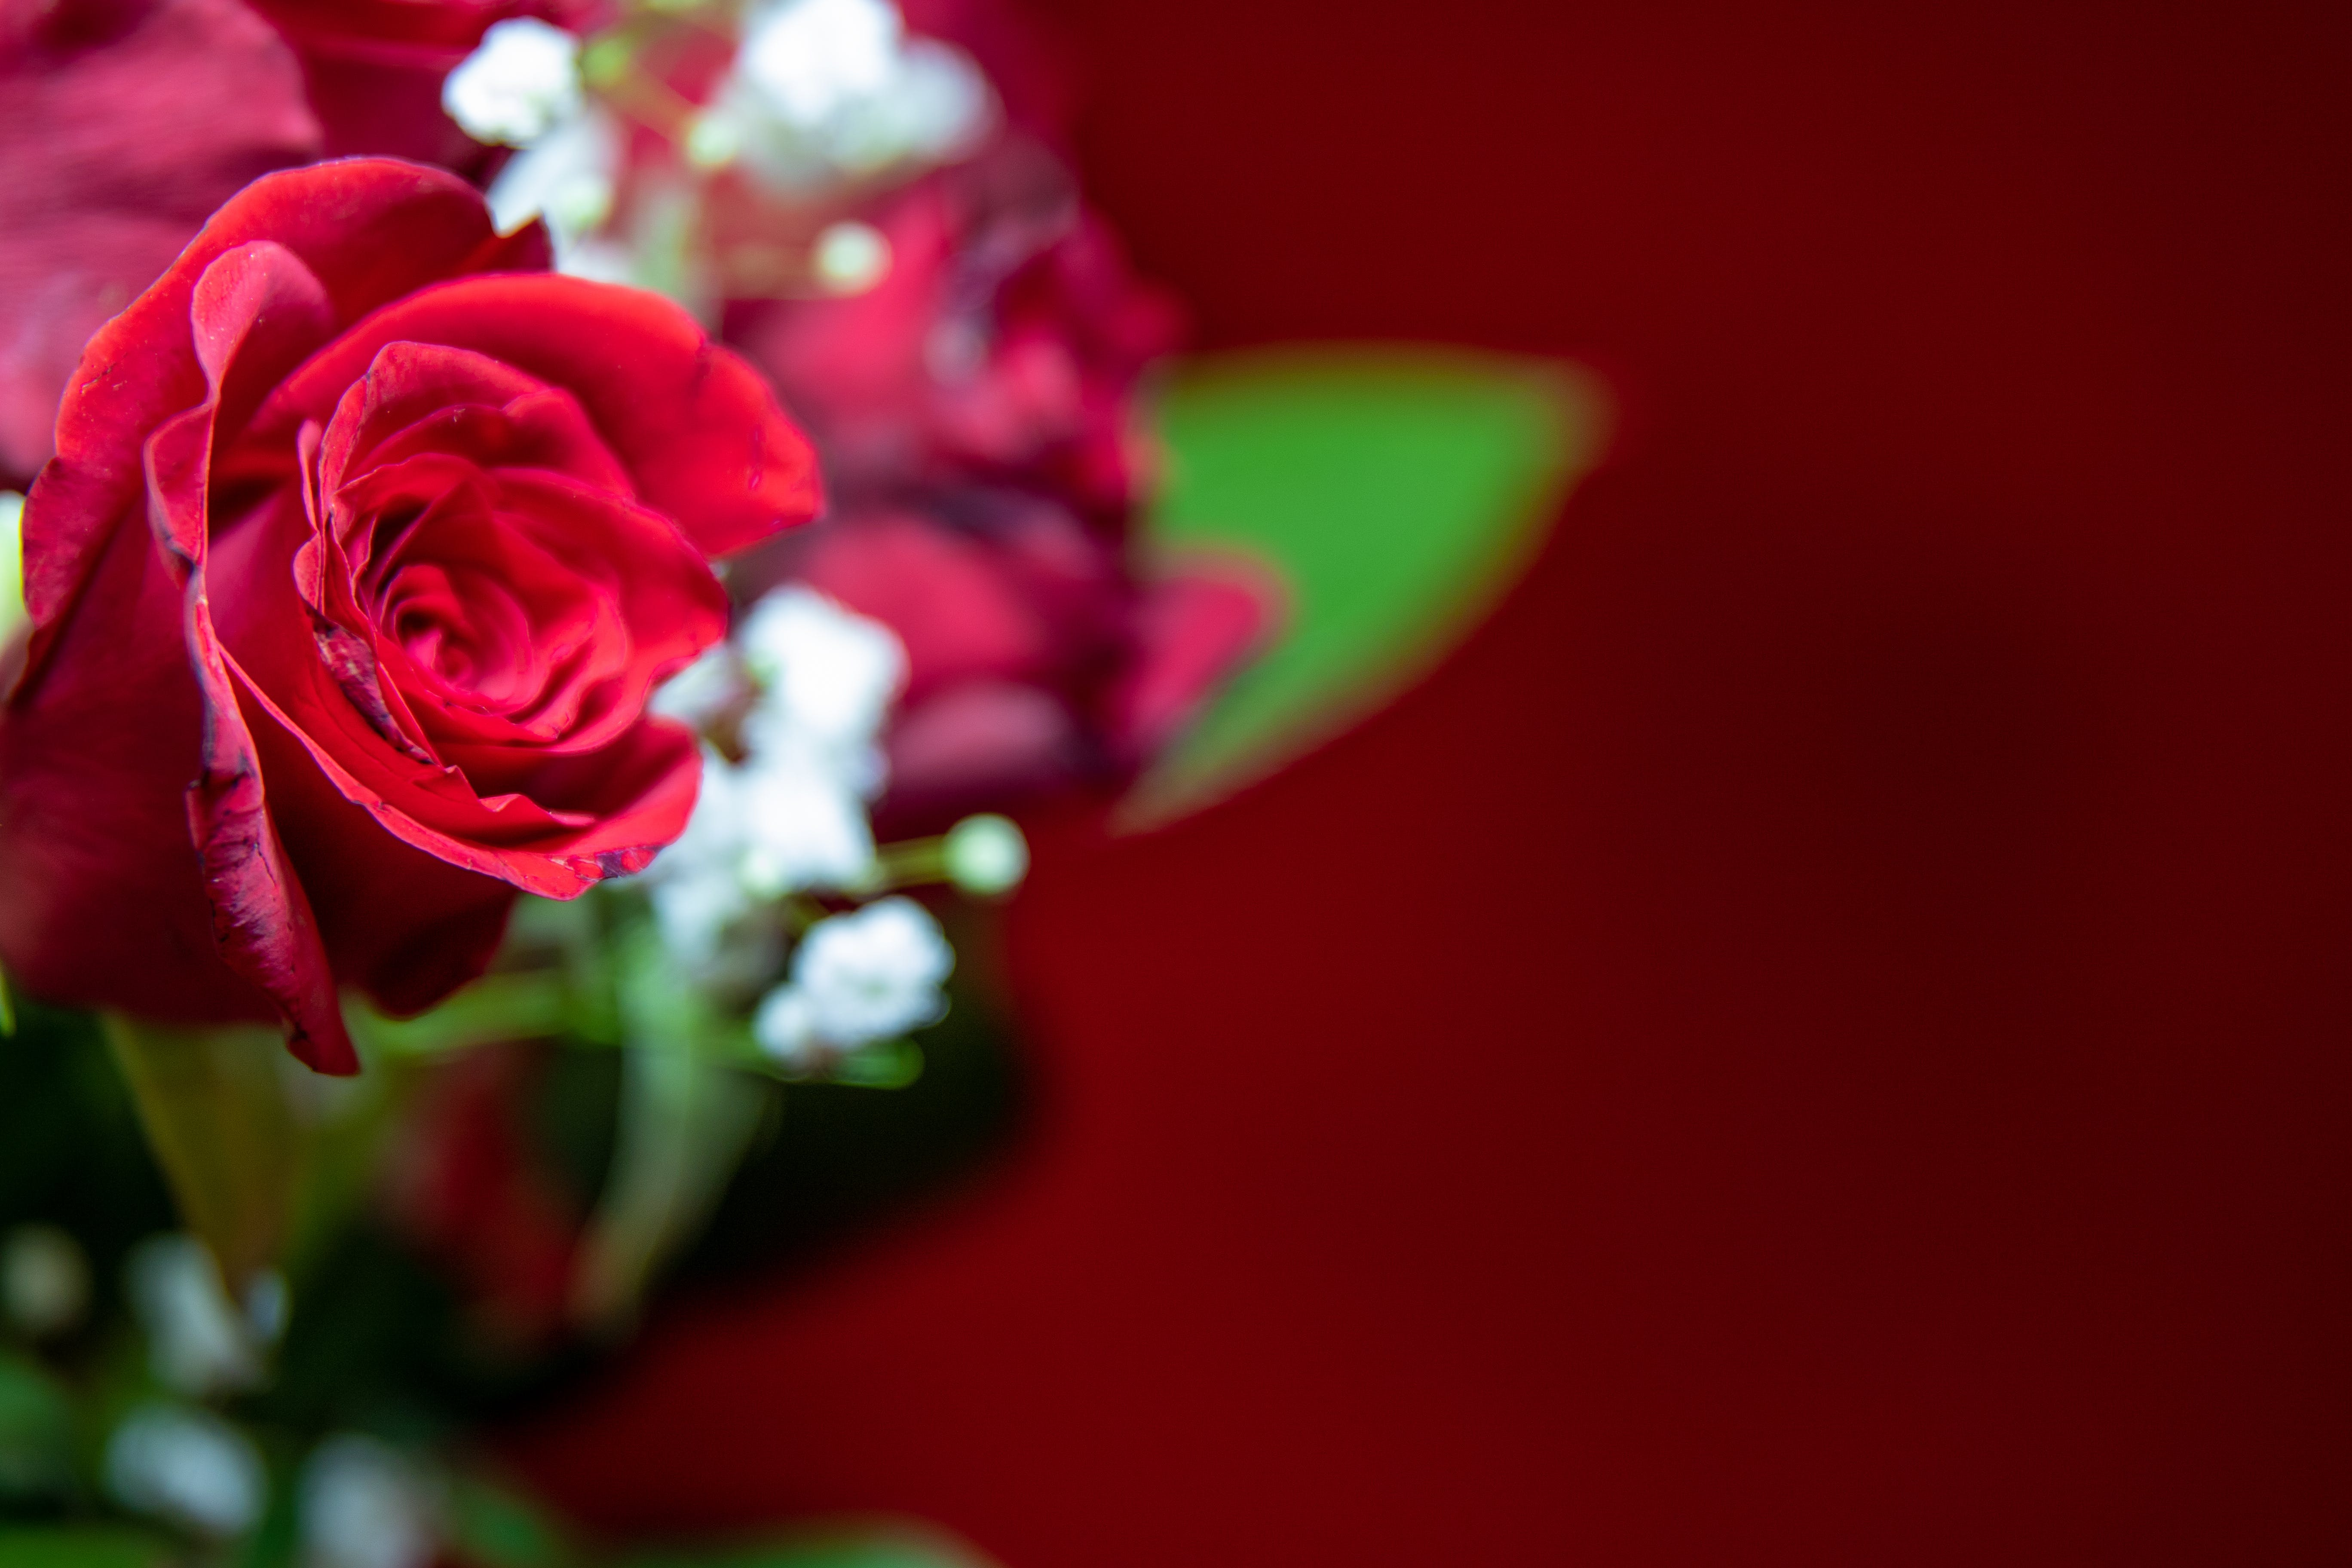 Free stock photo of nature, red, love, flowers